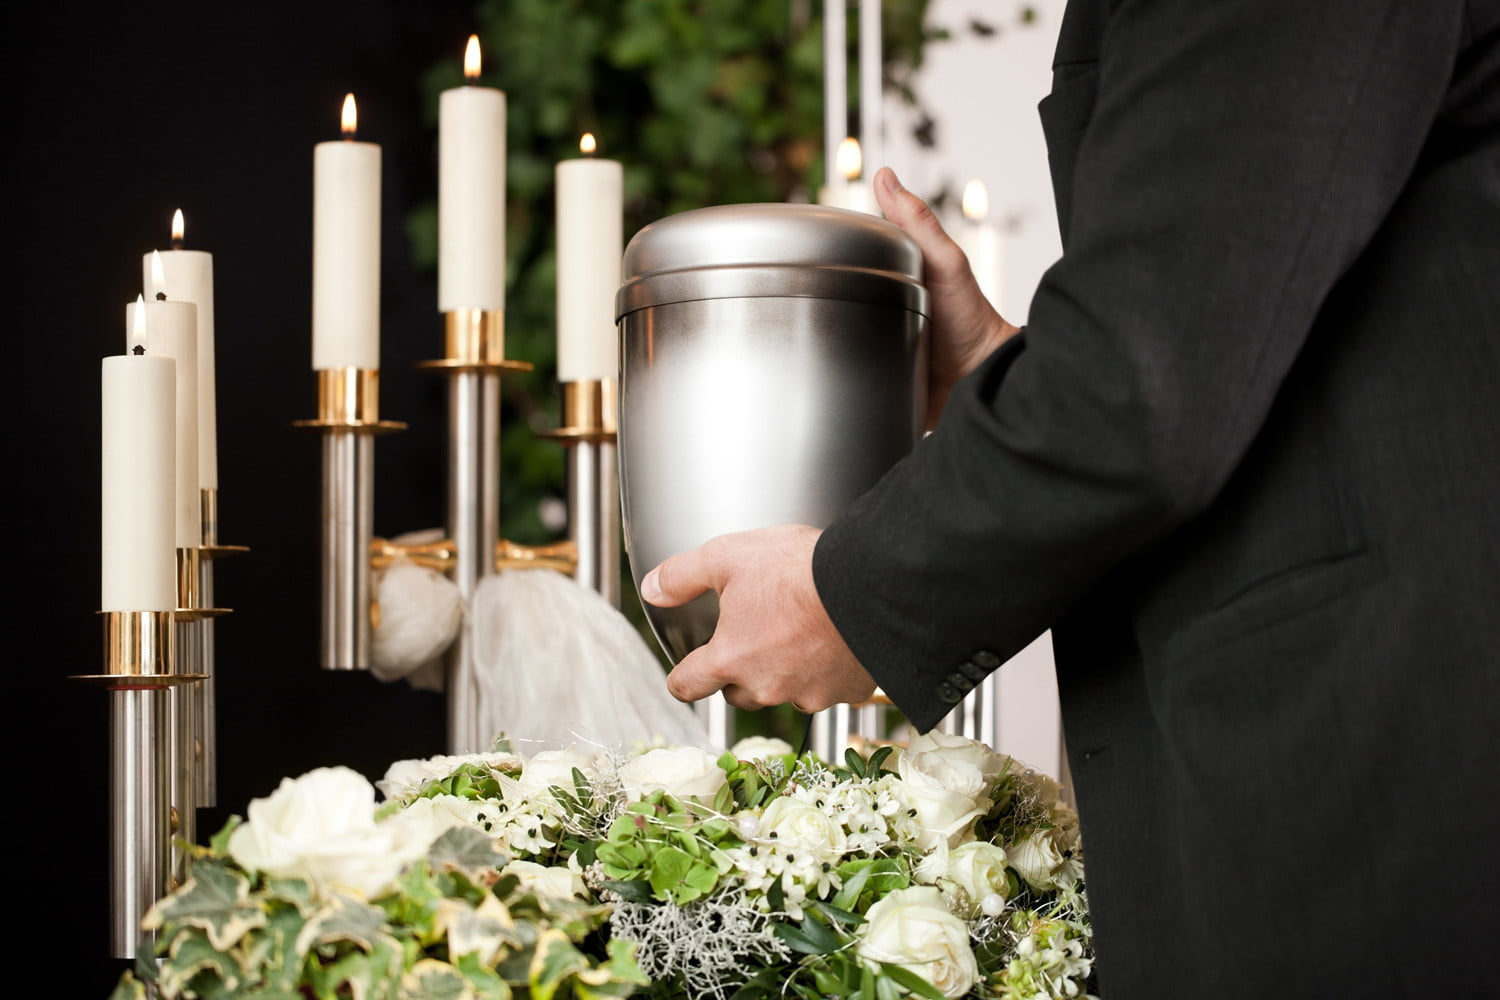 Keeping Dna Instead Of Ashes Is The New Funeral Ritual Digital Trends